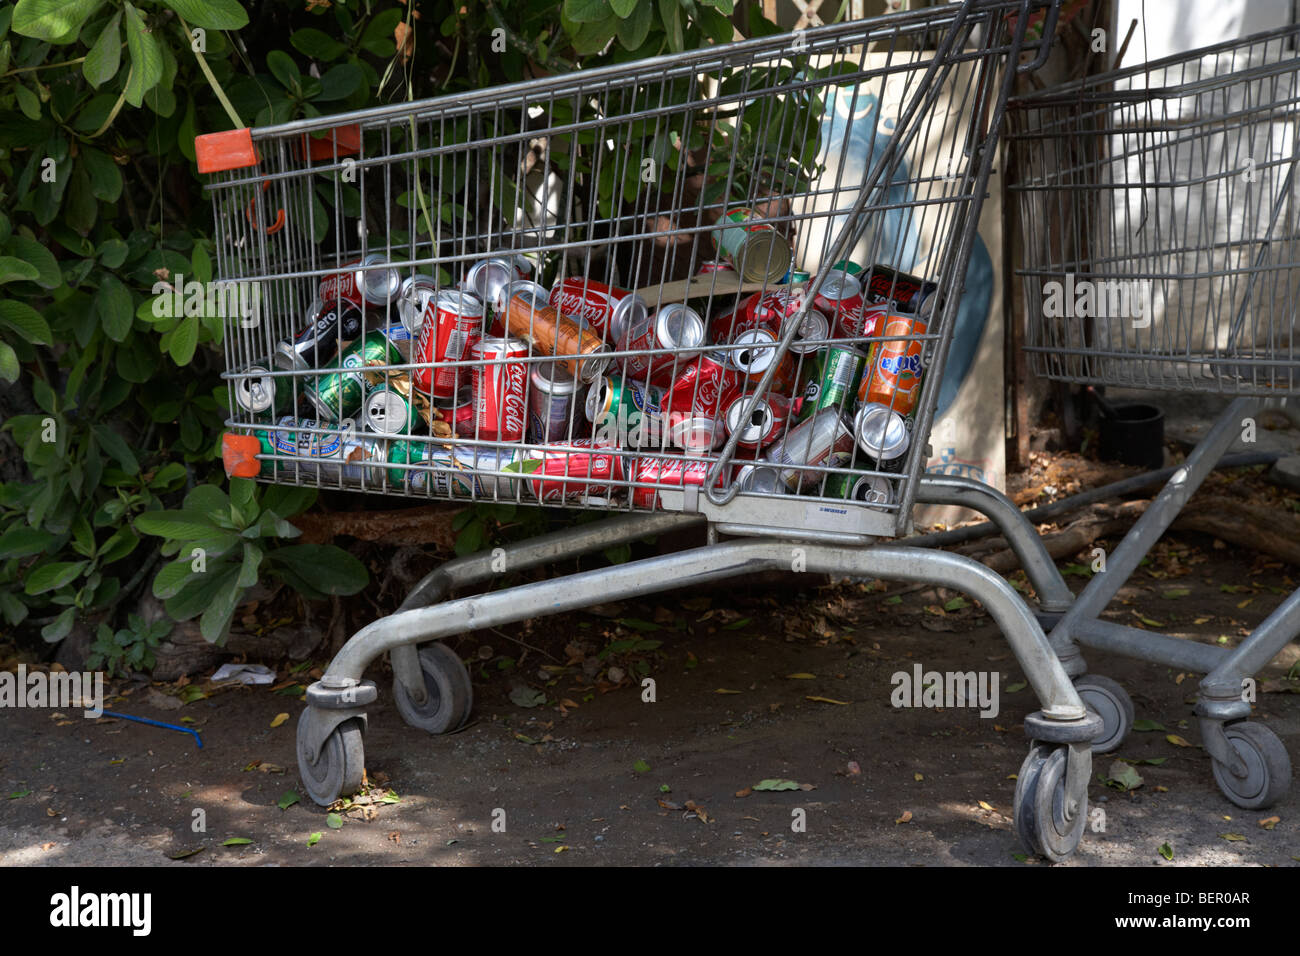 used aluminium cans collected in an old shopping trolley for scrap recycling nicosia lefkosia republic of cyprus - Stock Image